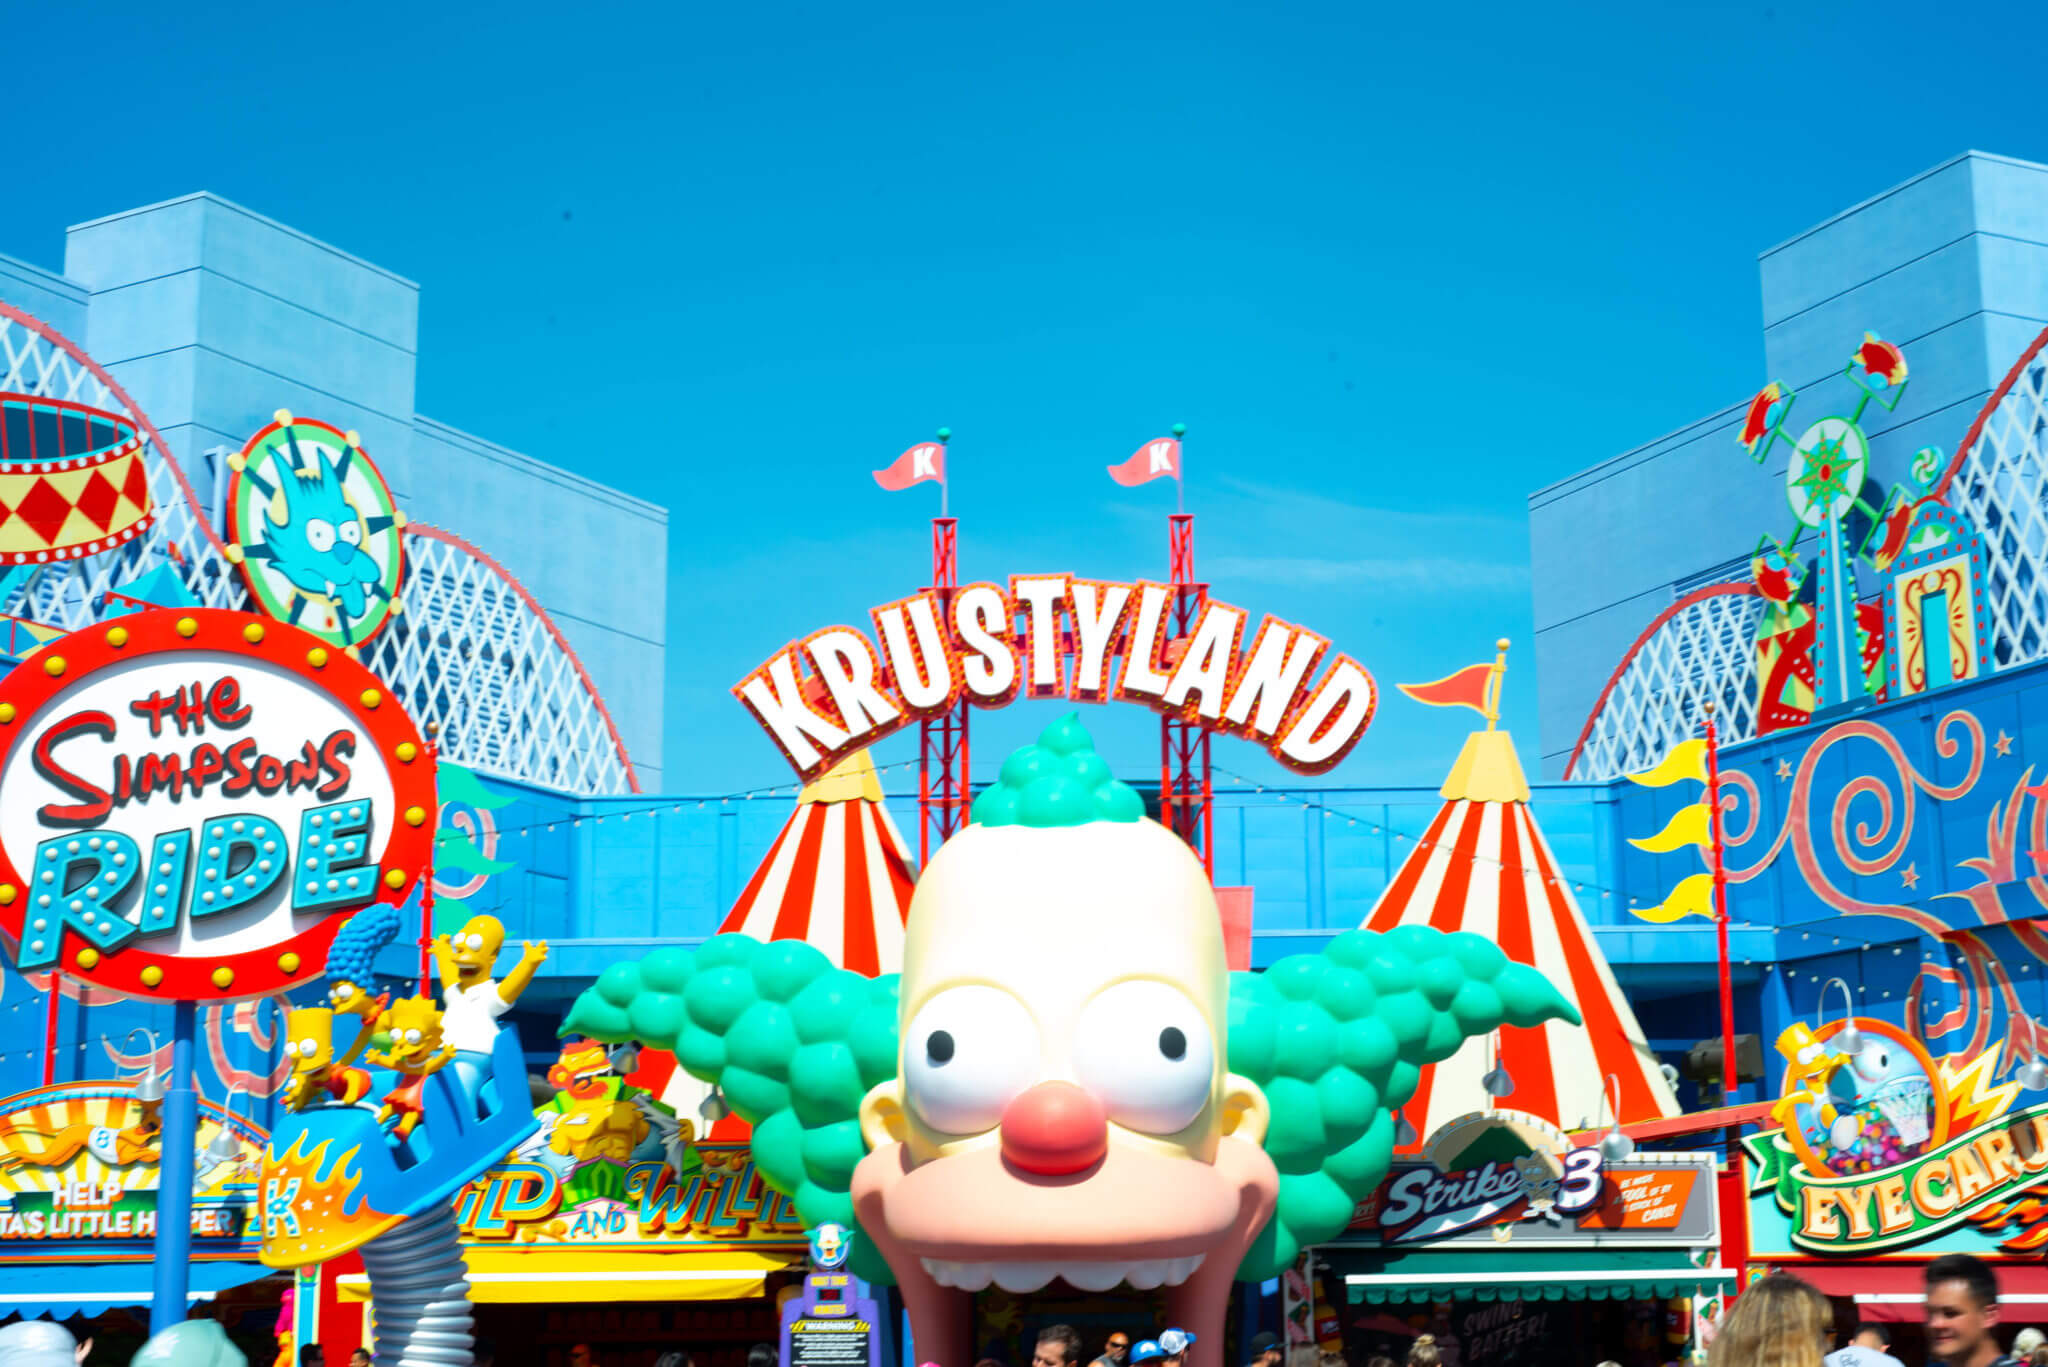 The Simpsons Ride in Krustyland at Universal Studios Hollywood